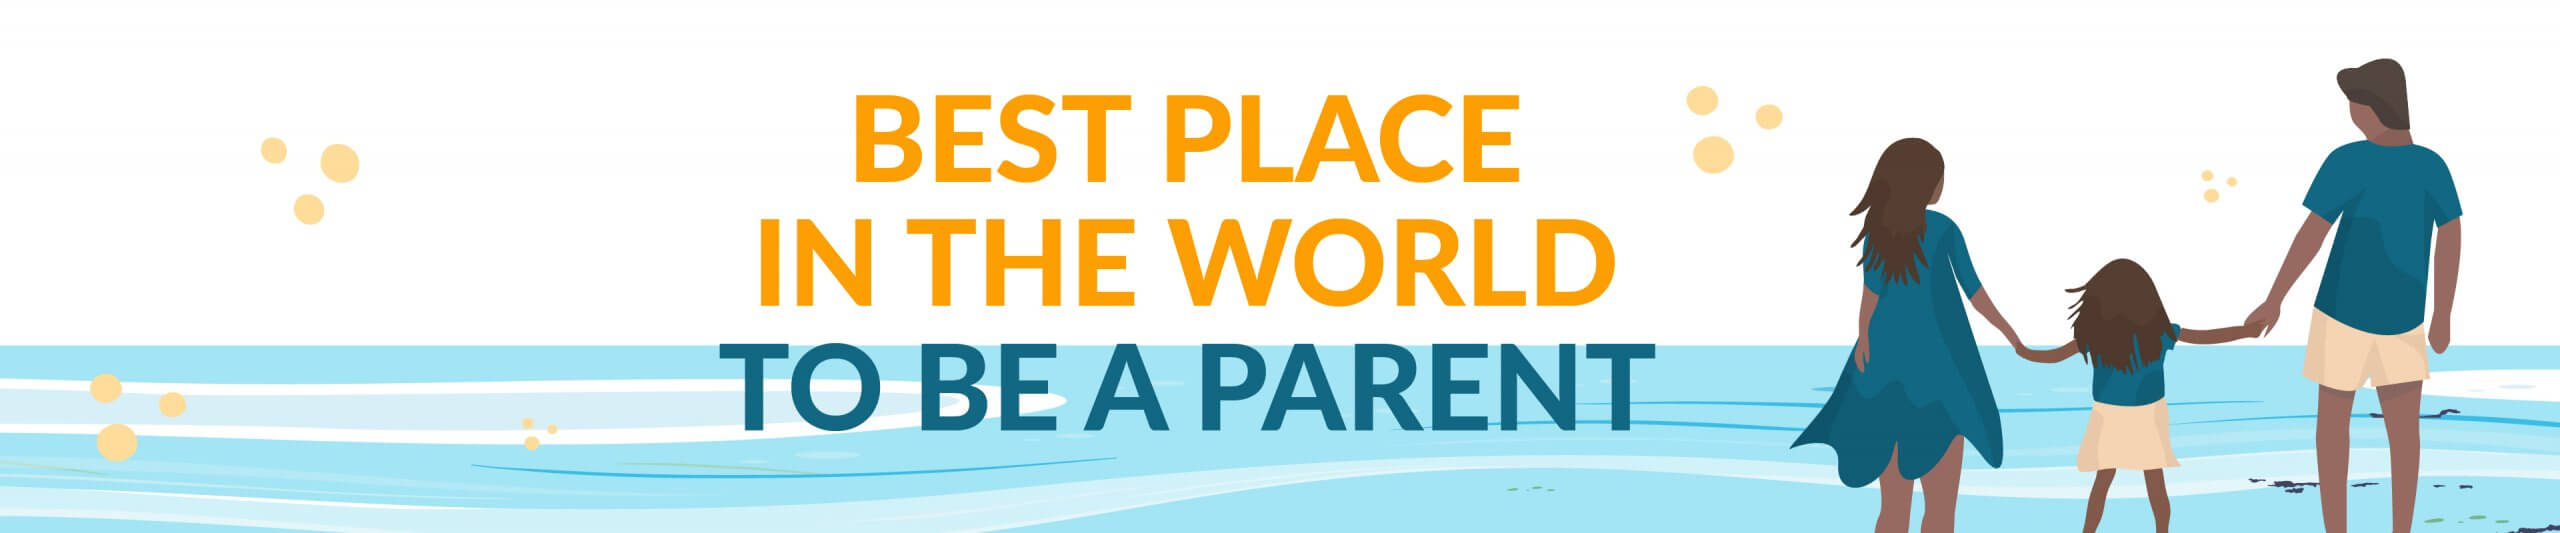 Best country for parents_Header